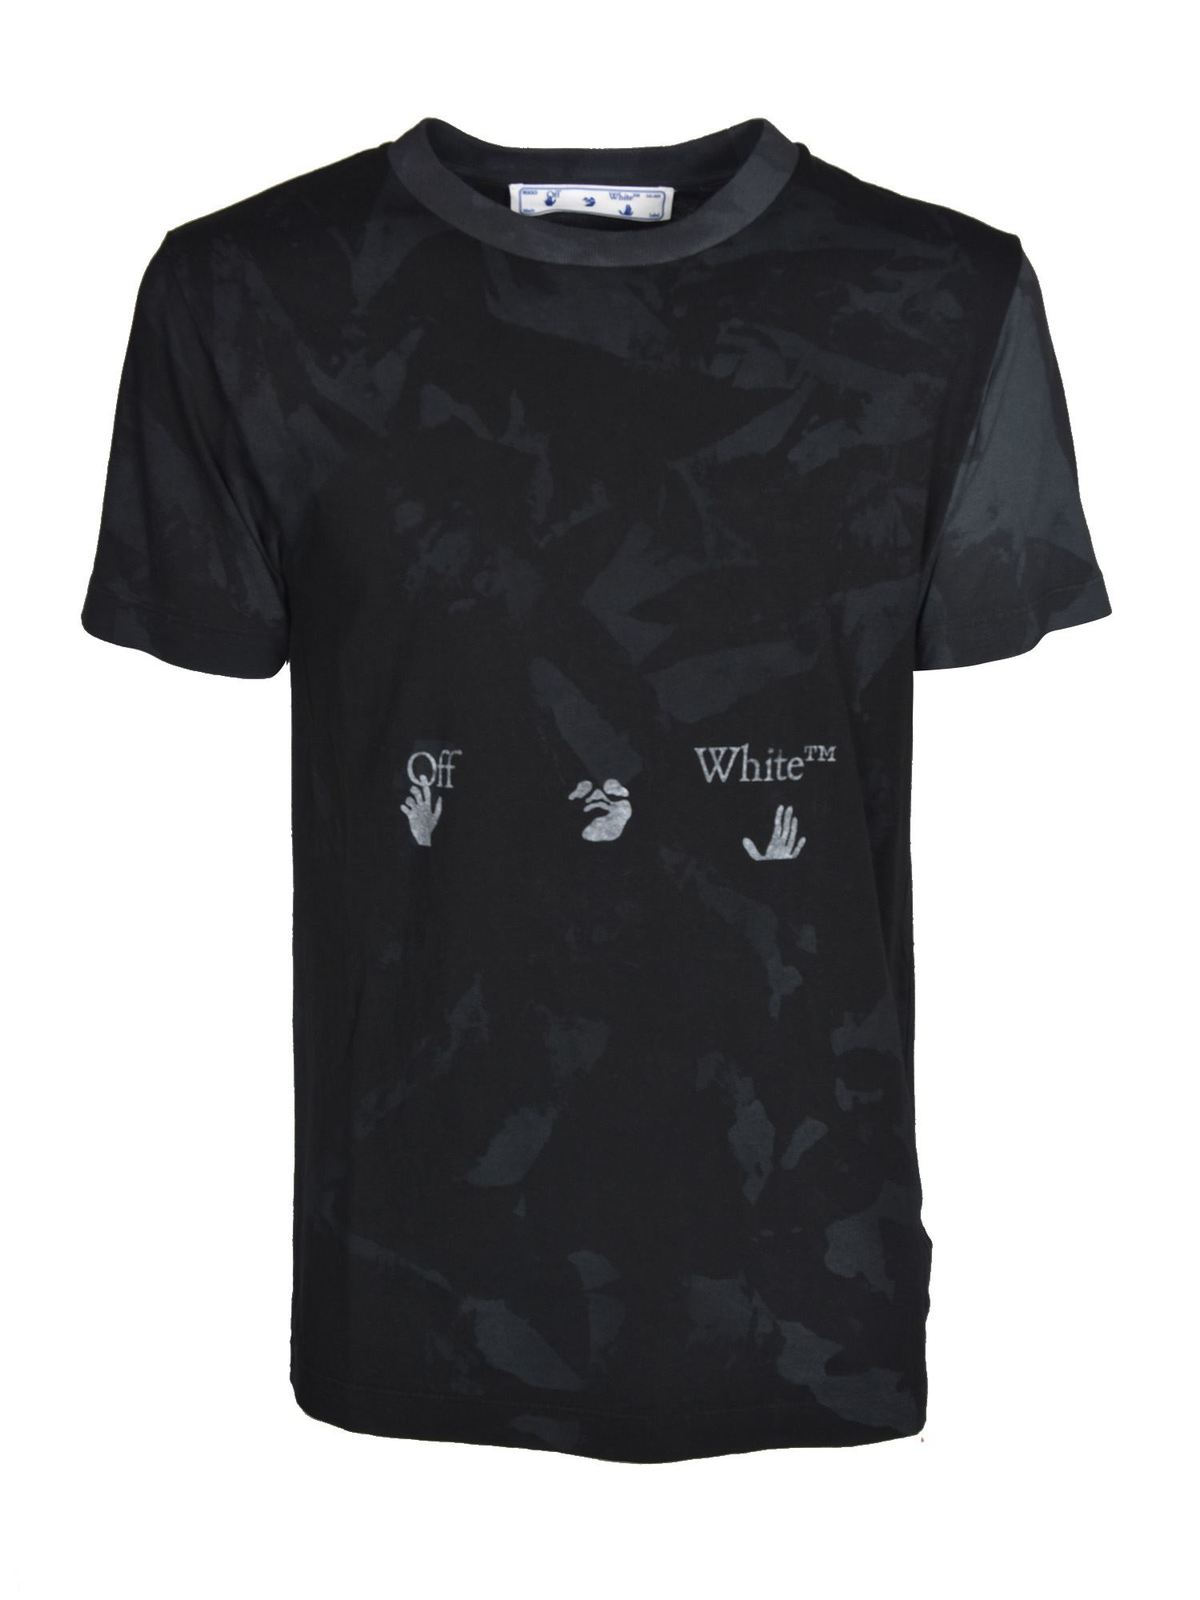 Off-White Cottons TIE DYE T-SHIRT IN BLACK AND GREY